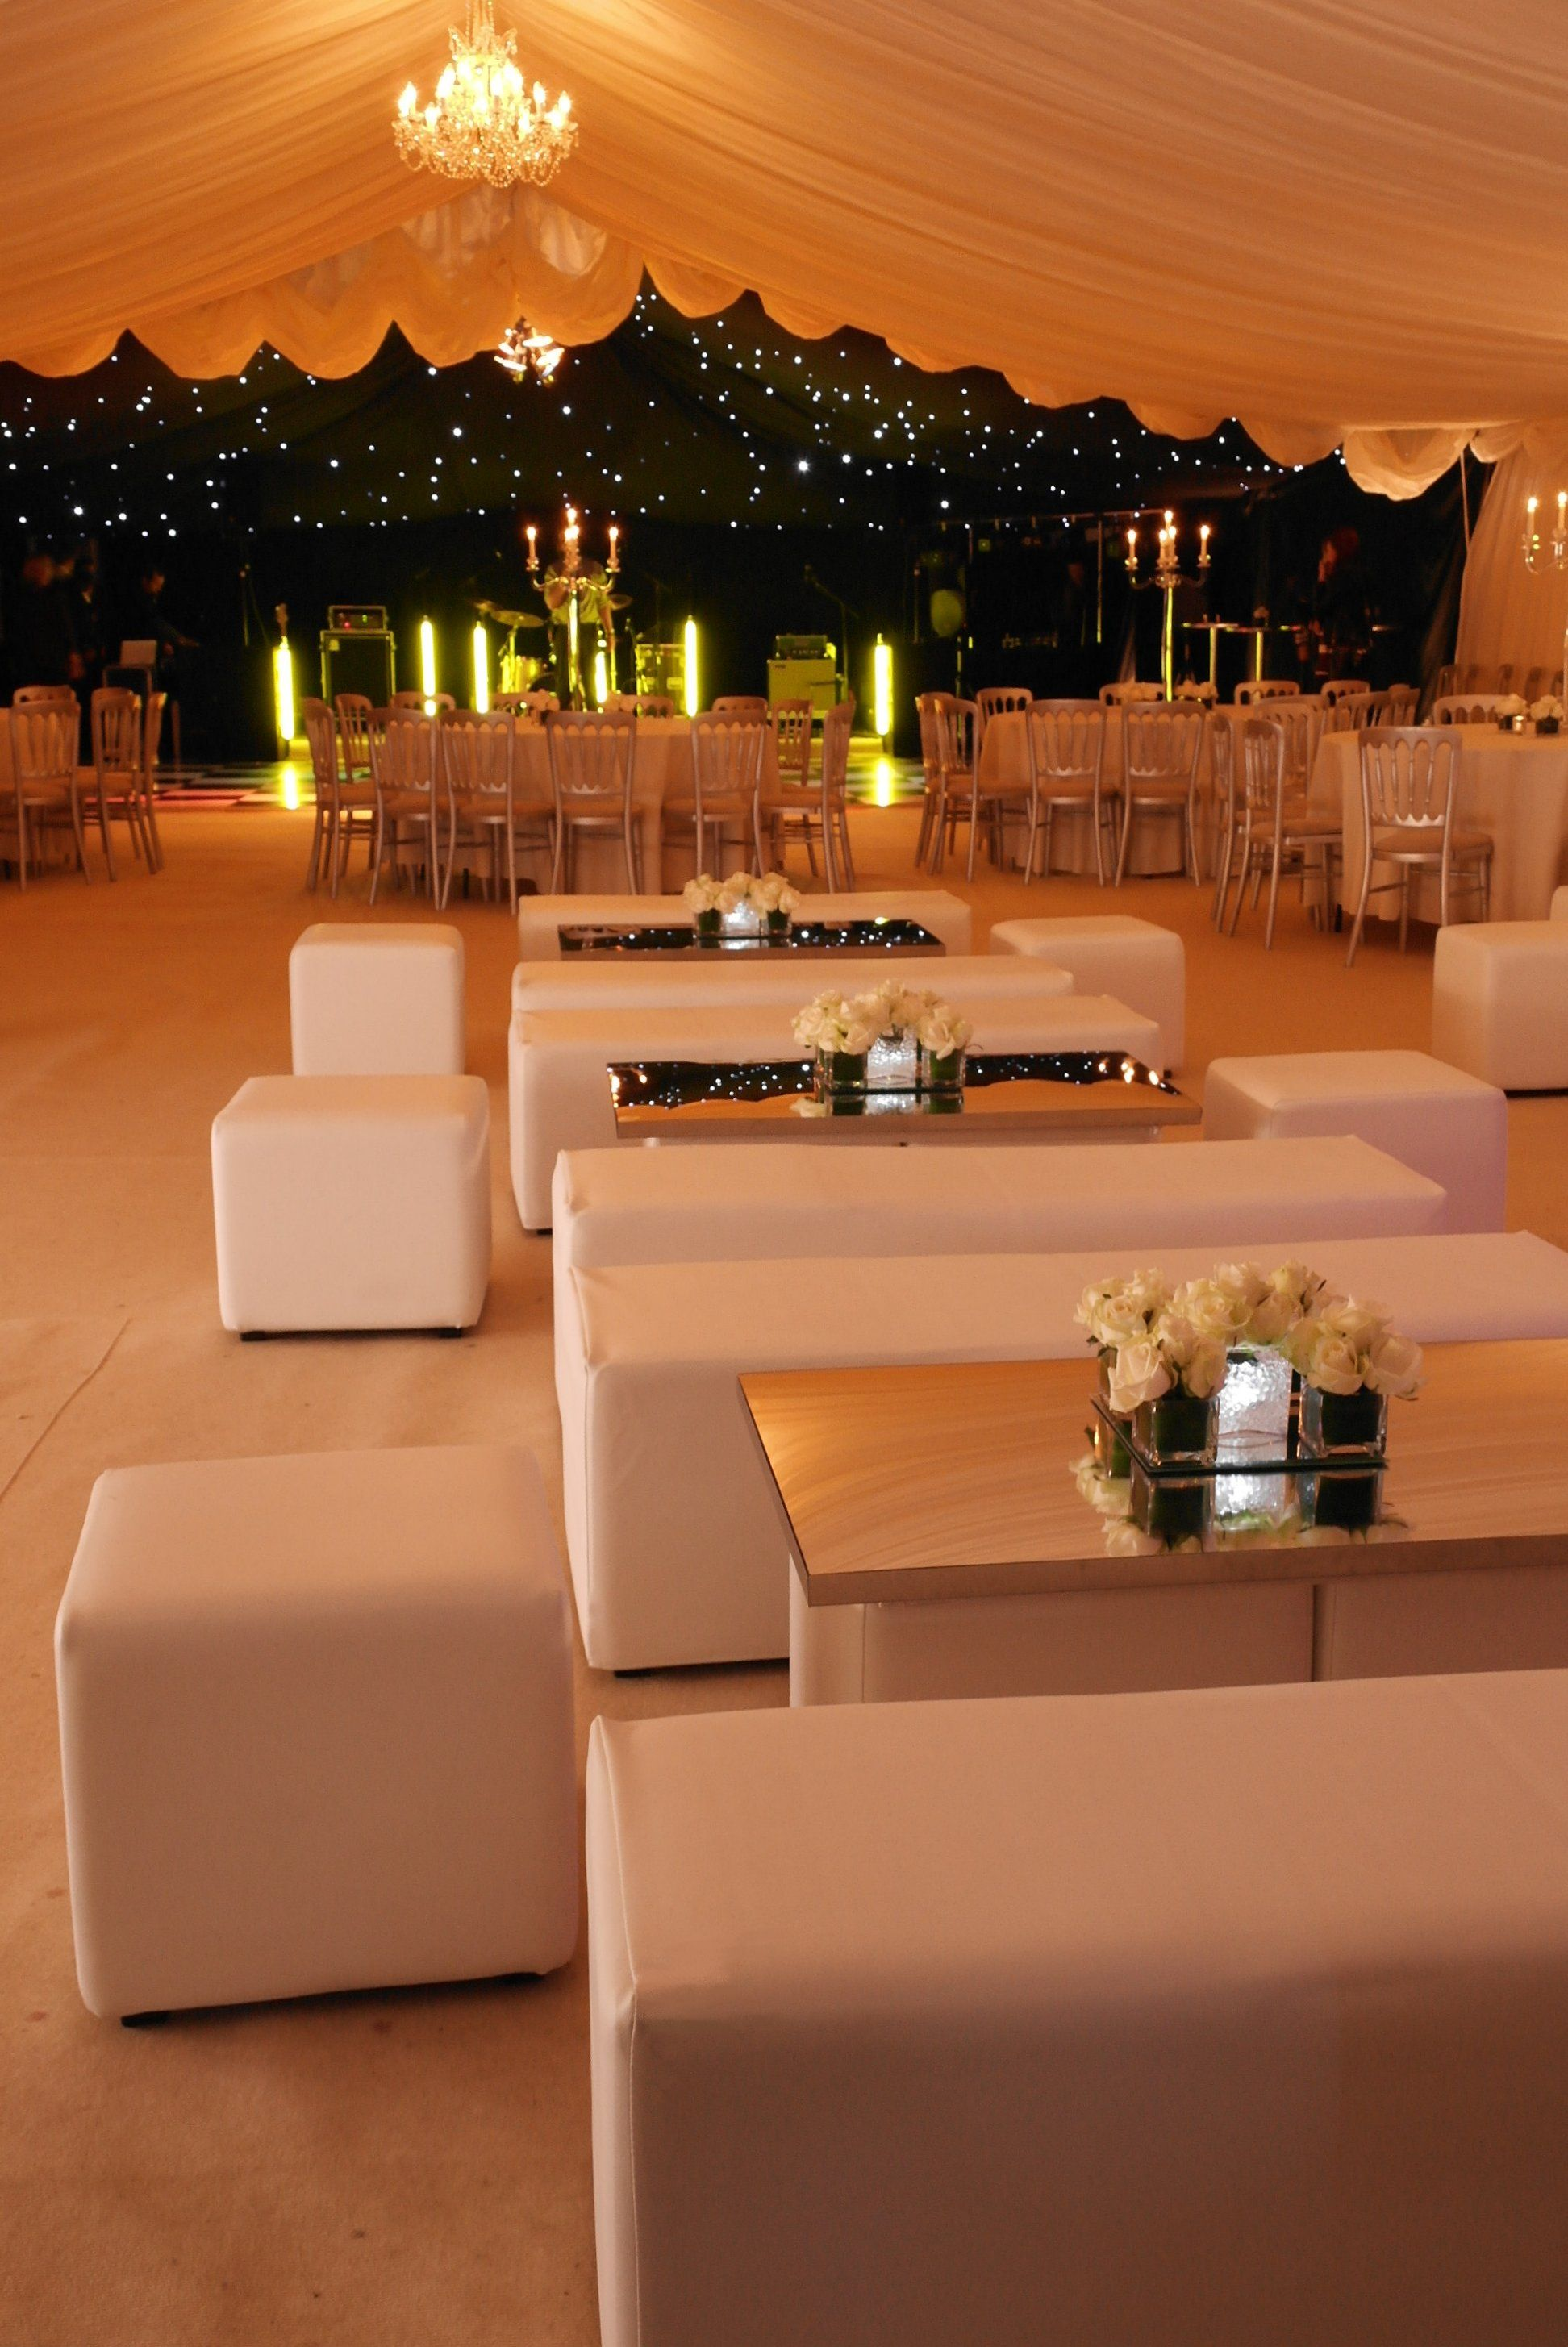 explore marquee events mirror tiles and more - Mirror Tile Castle Ideas